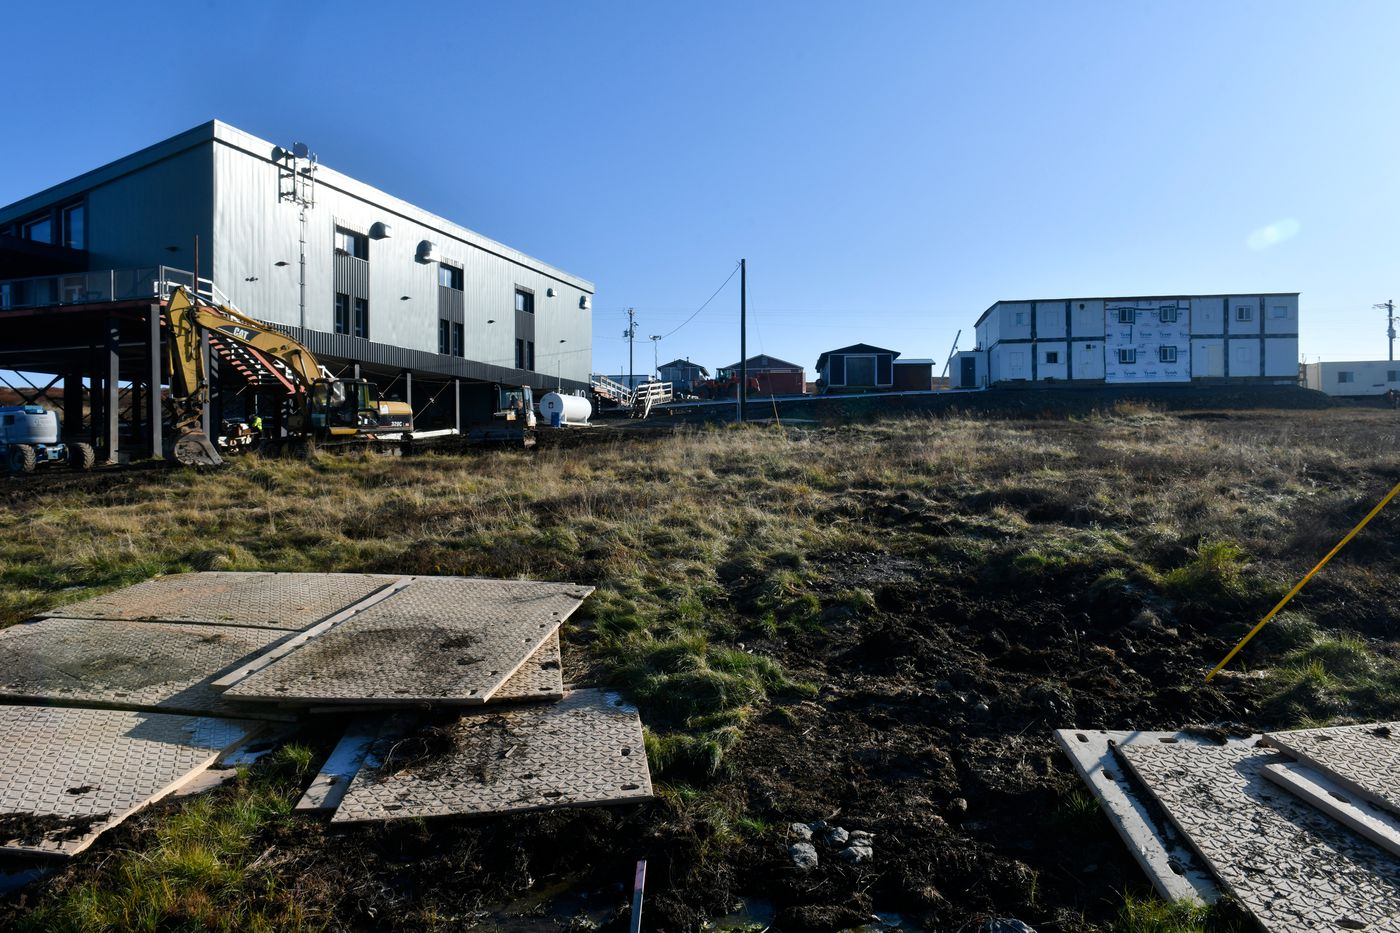 The 9,600-square-foot Mertarvik Evacuation Center, left, will serve as a community center and will house the village's school temporarily. (Marc Lester / ADN)